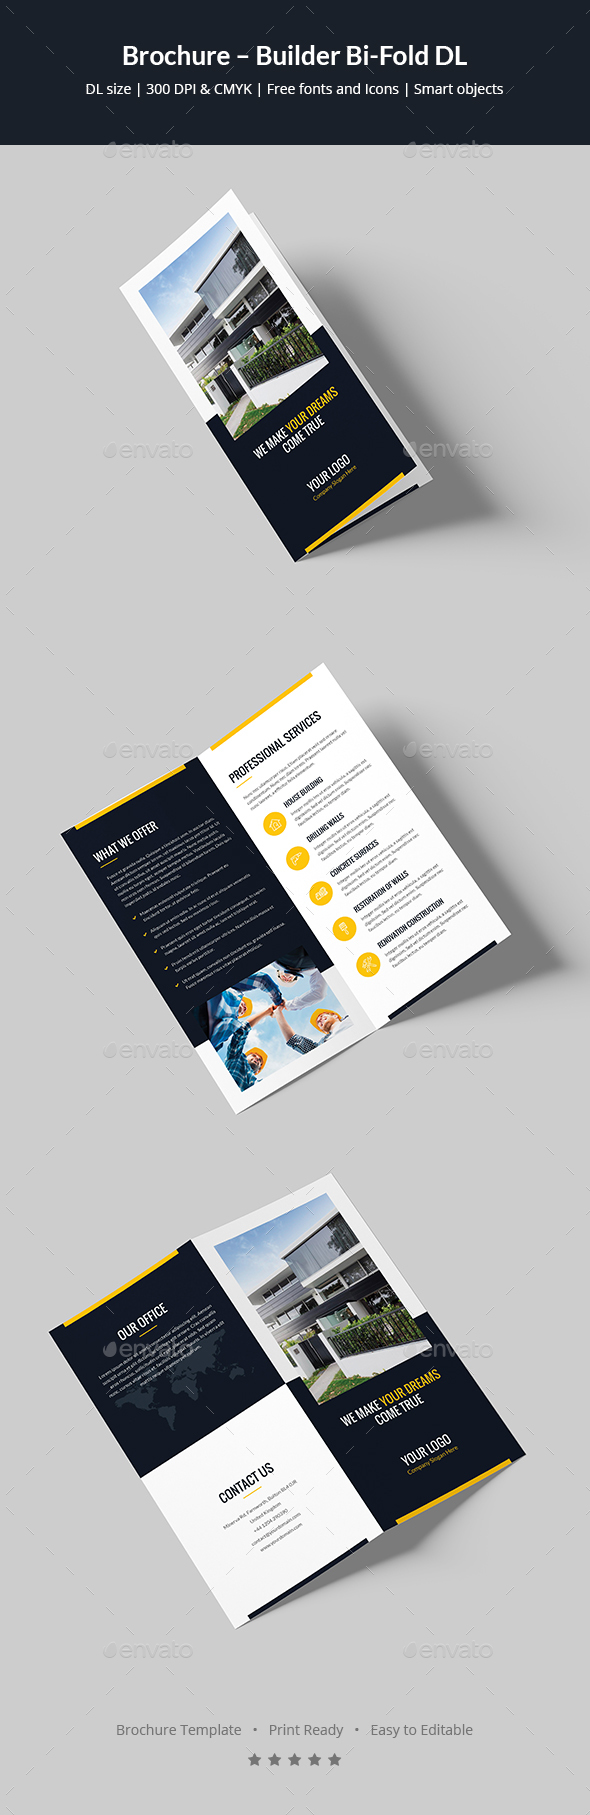 brochure builder bi fold dl by artbart graphicriver